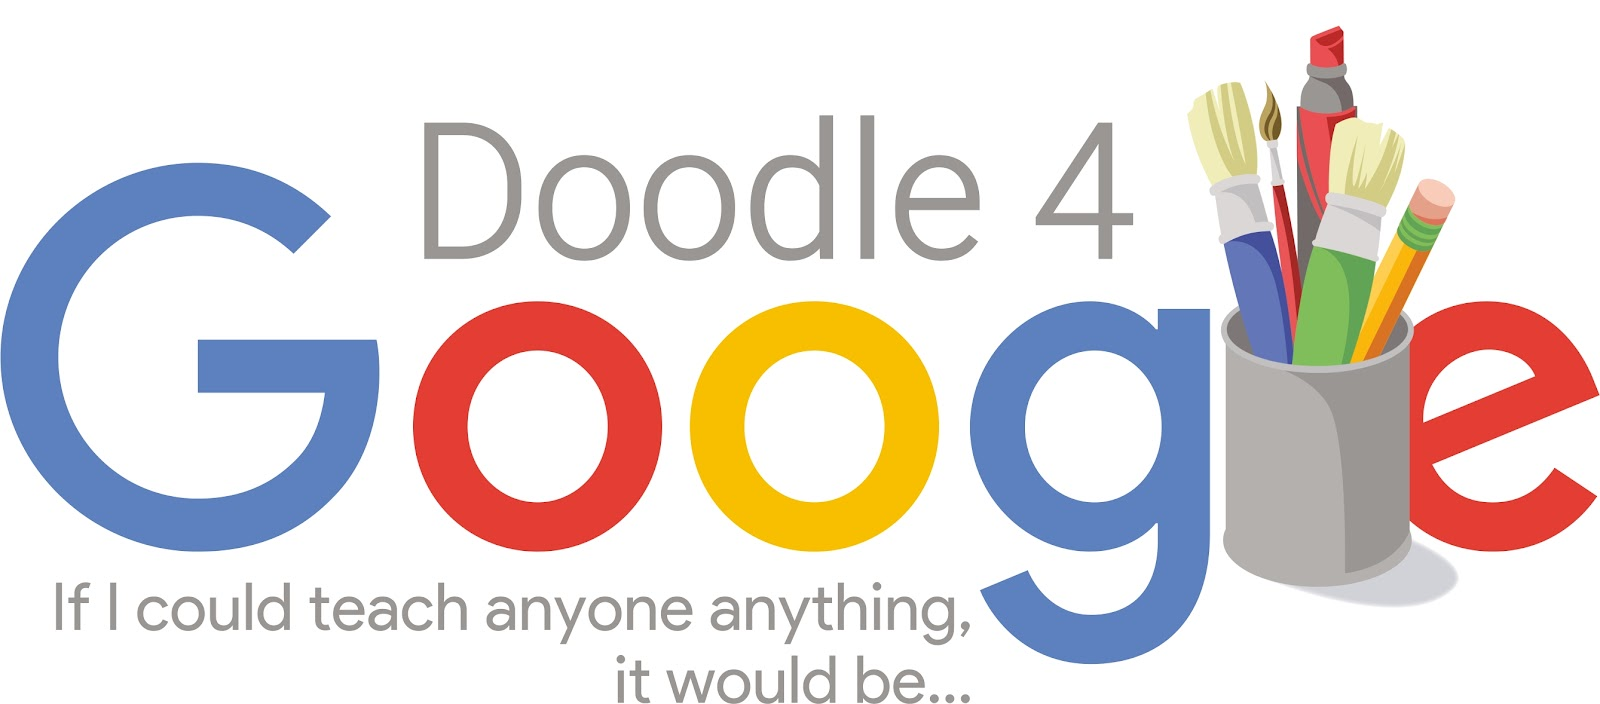 meet the finalists for doodle 4 google india 2016 and vote to choose